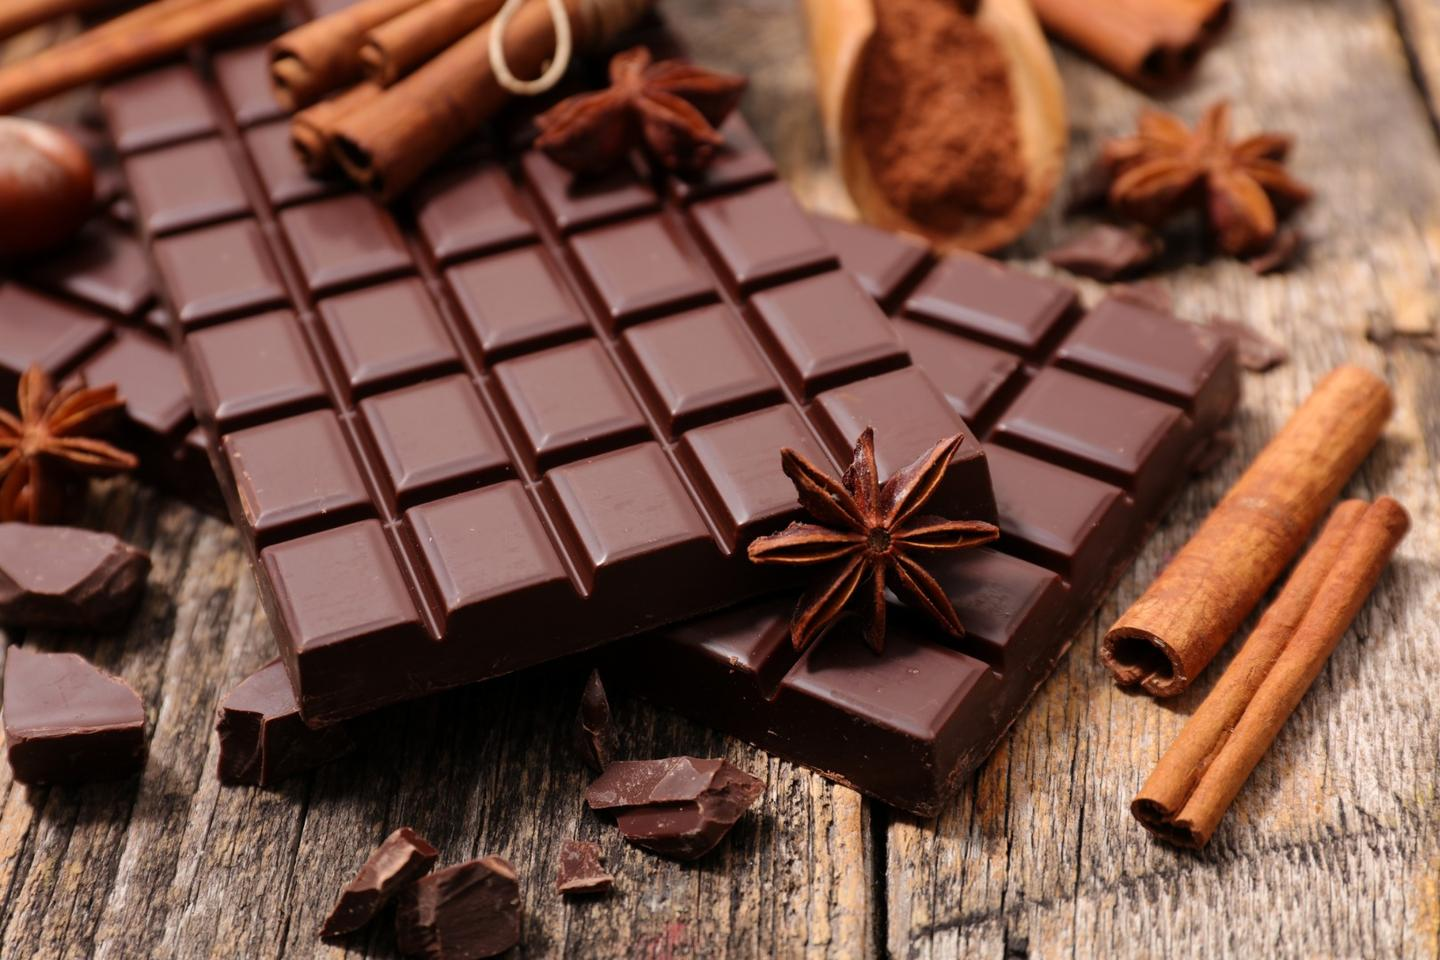 Researchers have traced back the evolutionary history of the cocoa tree to a single domestication event 3,600 years ago